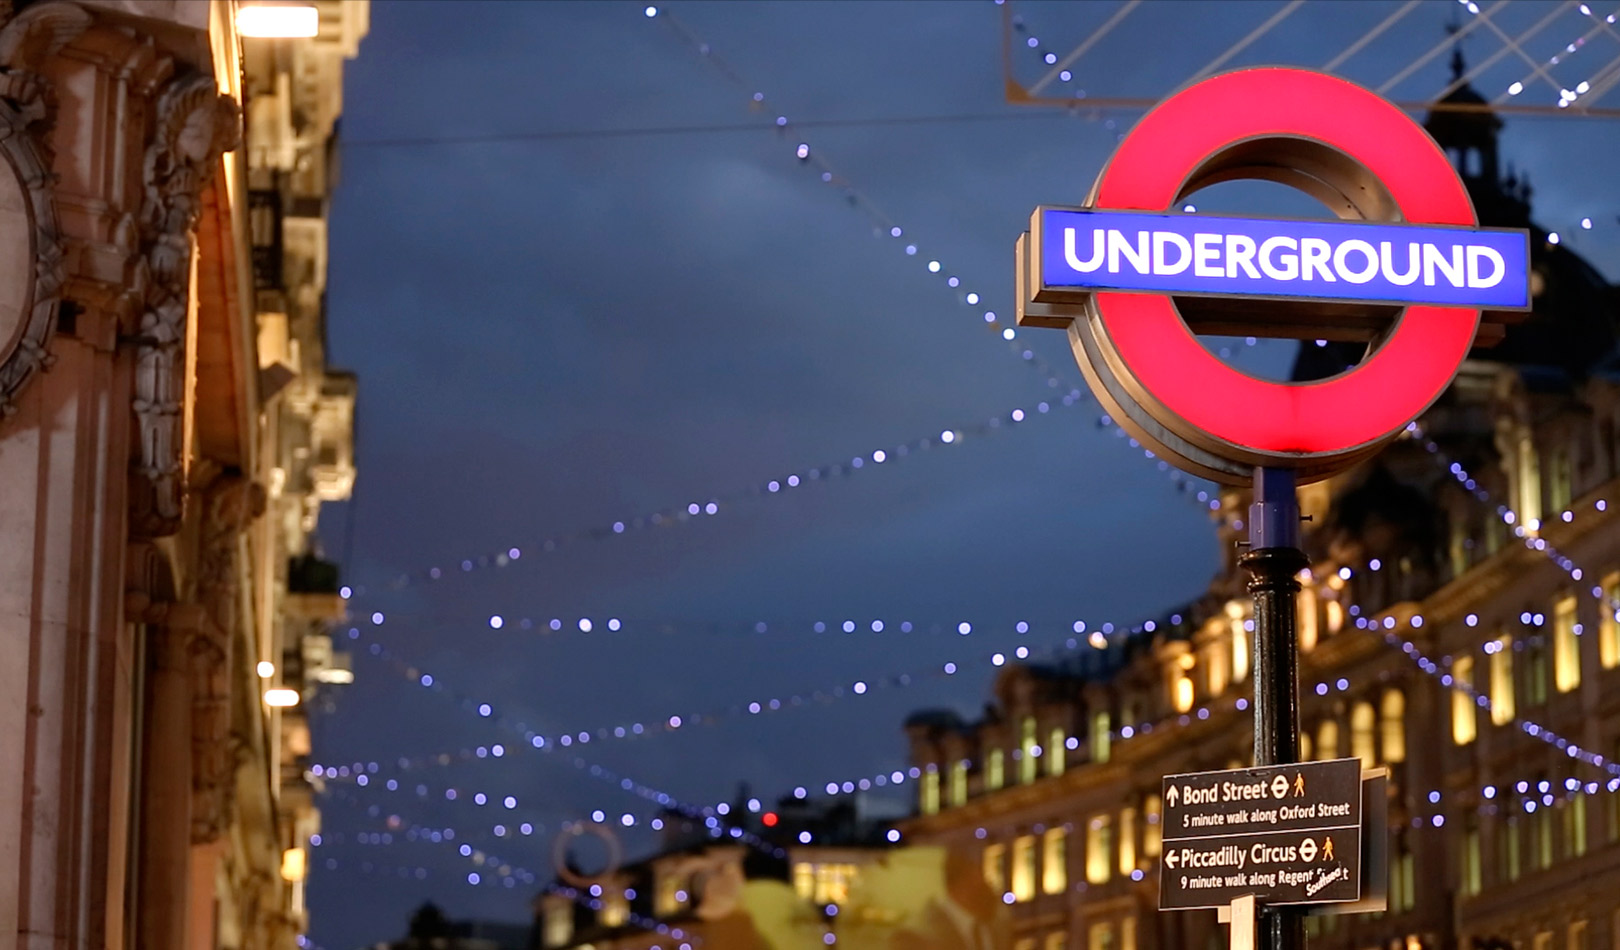 London Underground skilt nær Bond Street, London.